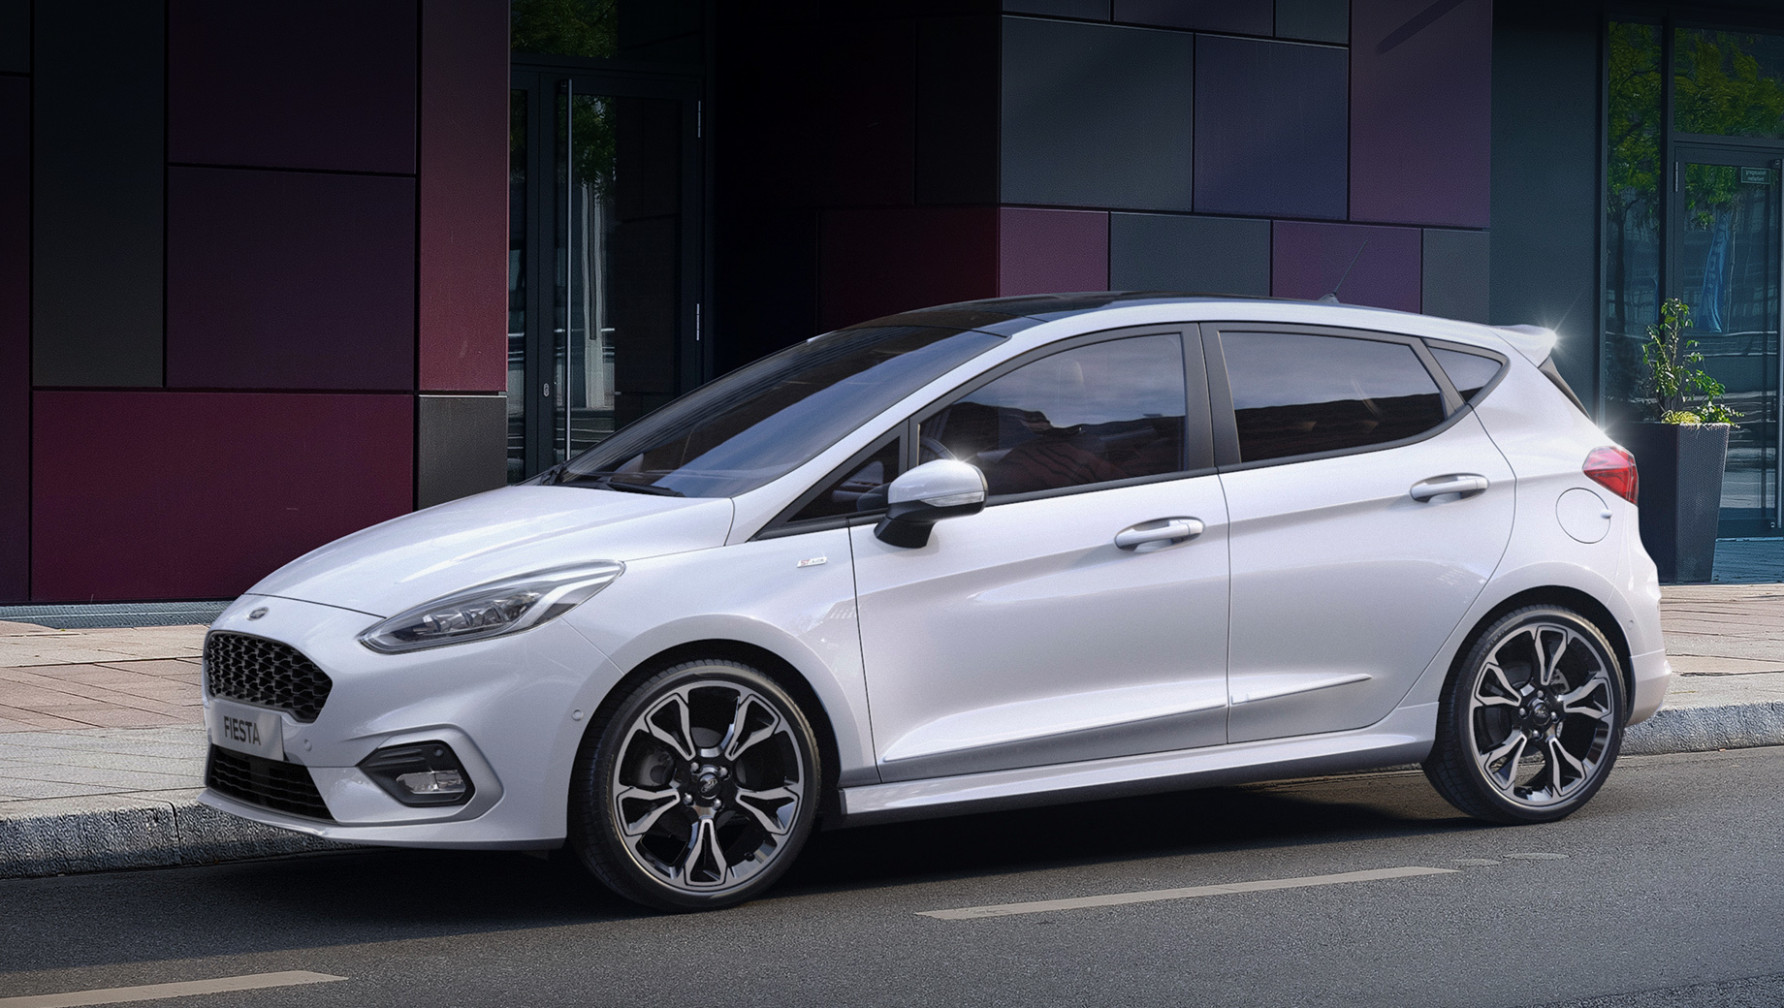 Overview 2022 Ford Fiesta